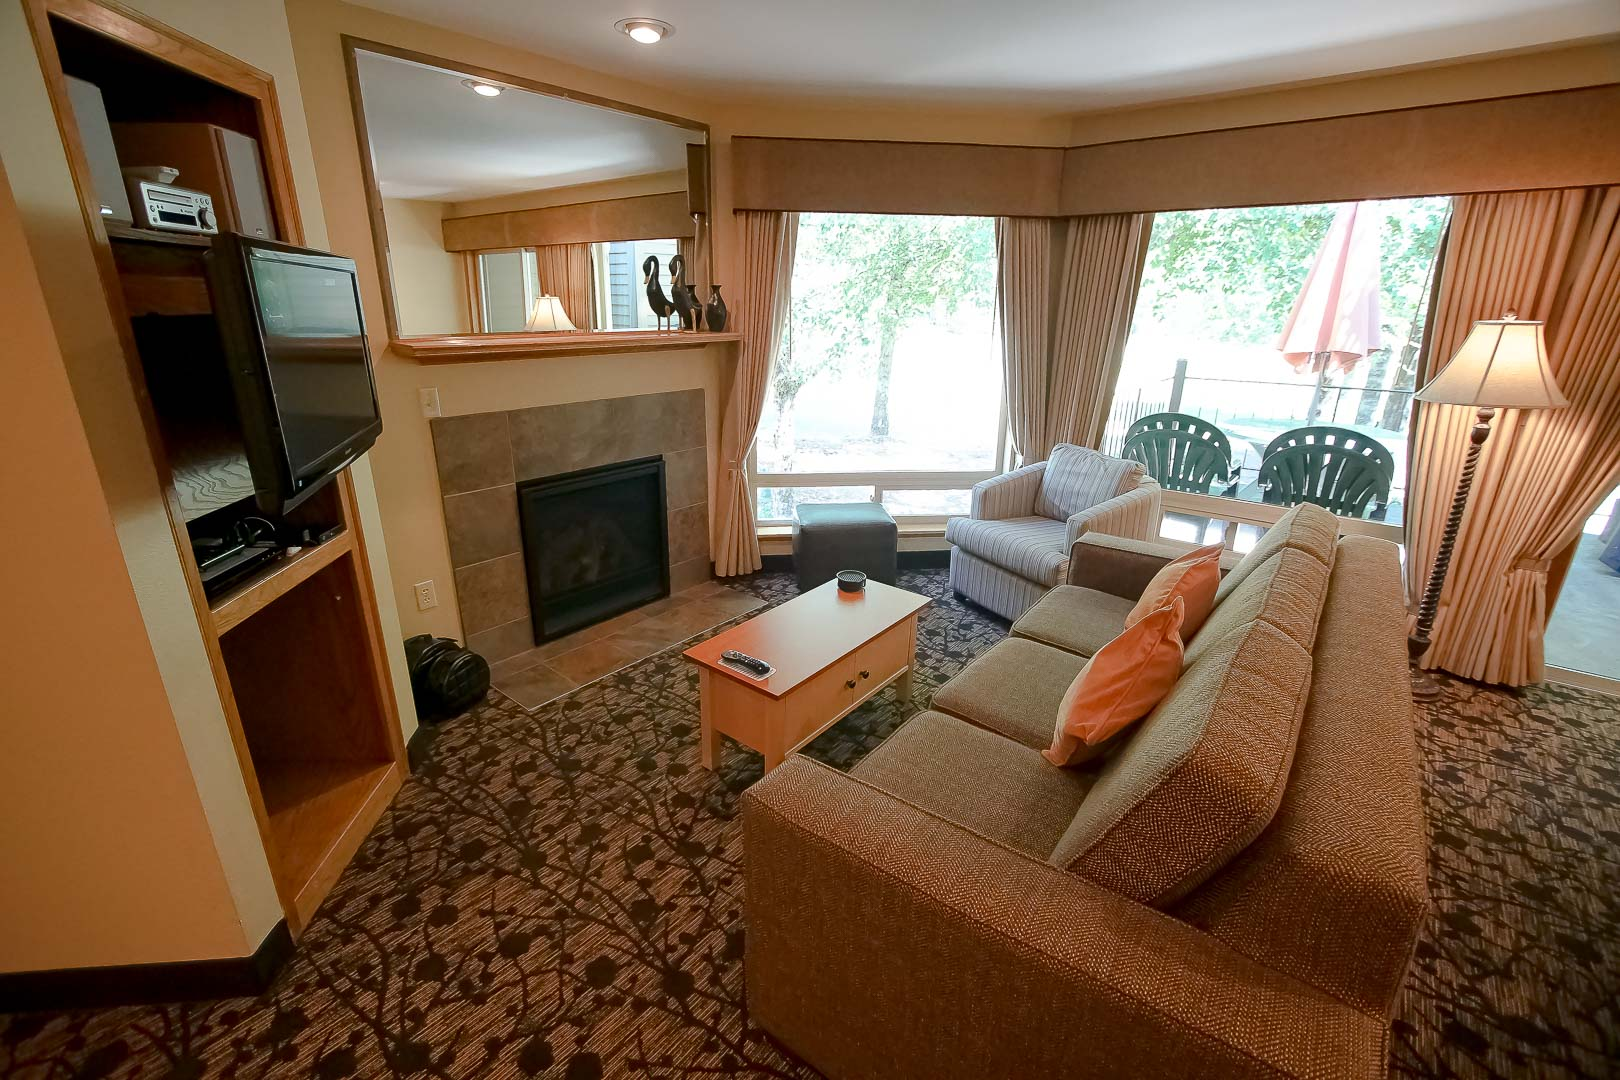 The unit's interior, living room at VRI's Whispering Woods Resort in Oregon.